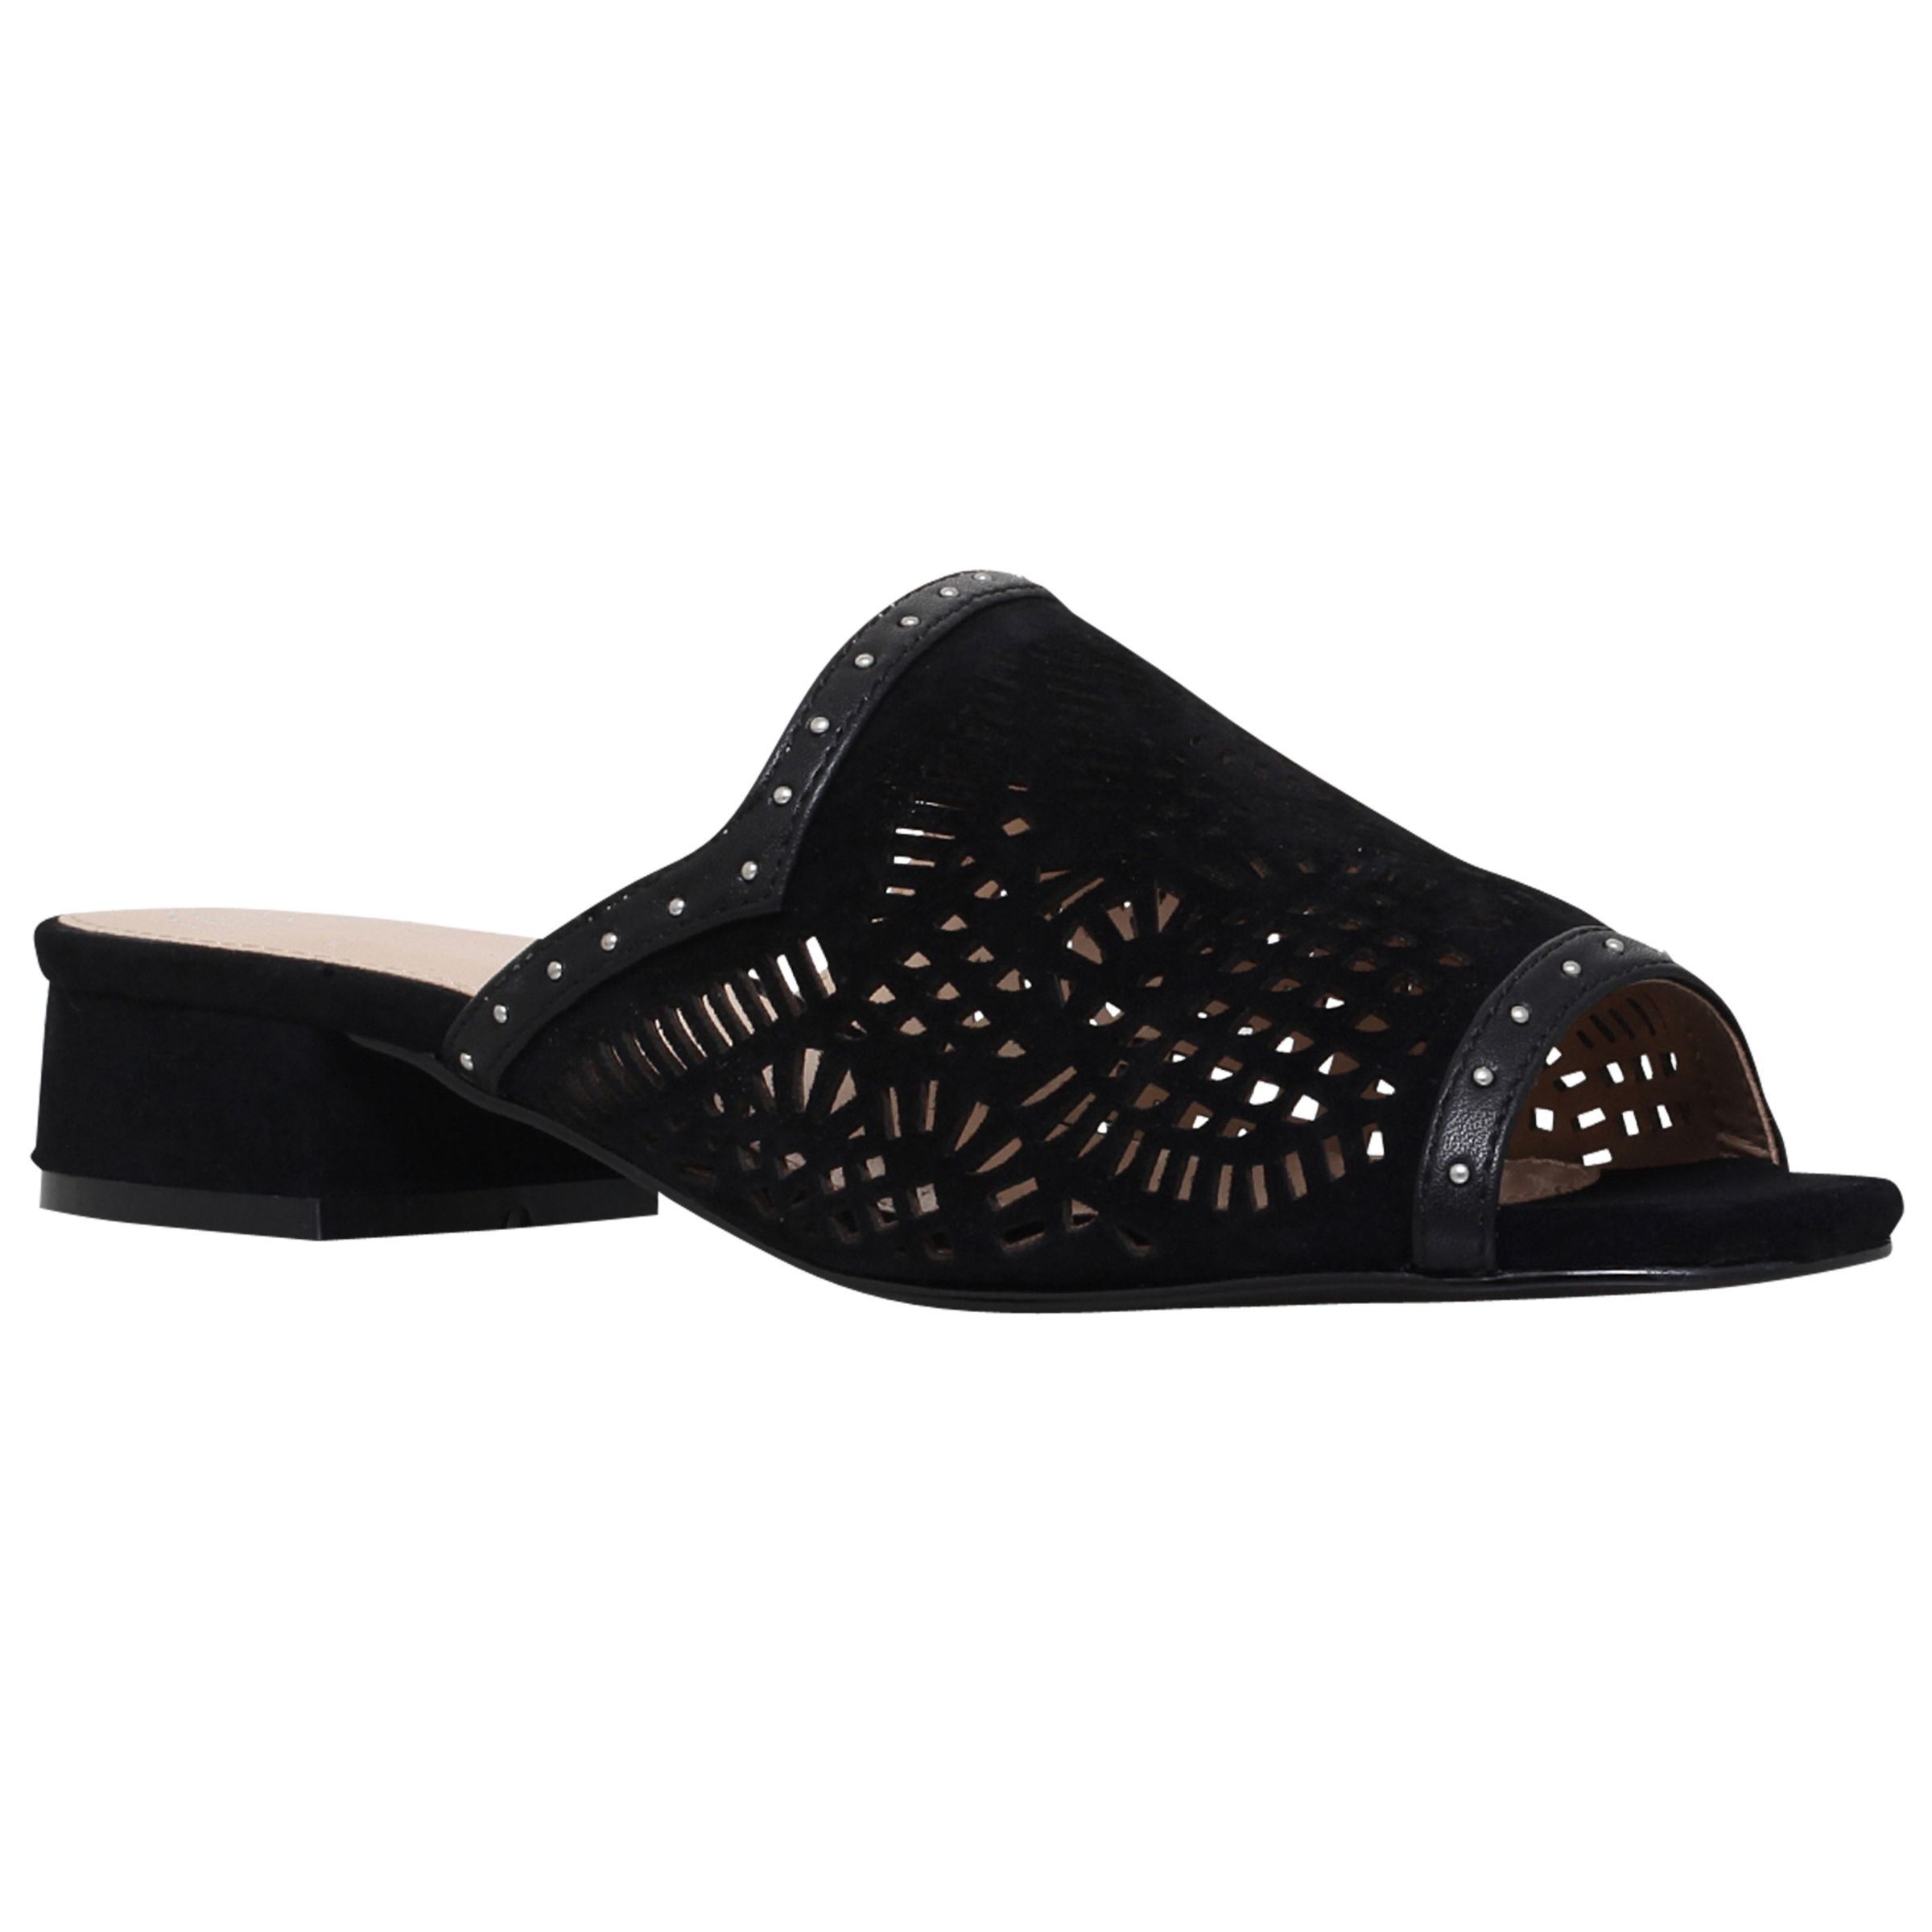 KG by Kurt Geiger KG by Kurt Geiger Mojave Cut Out Sandals, Black